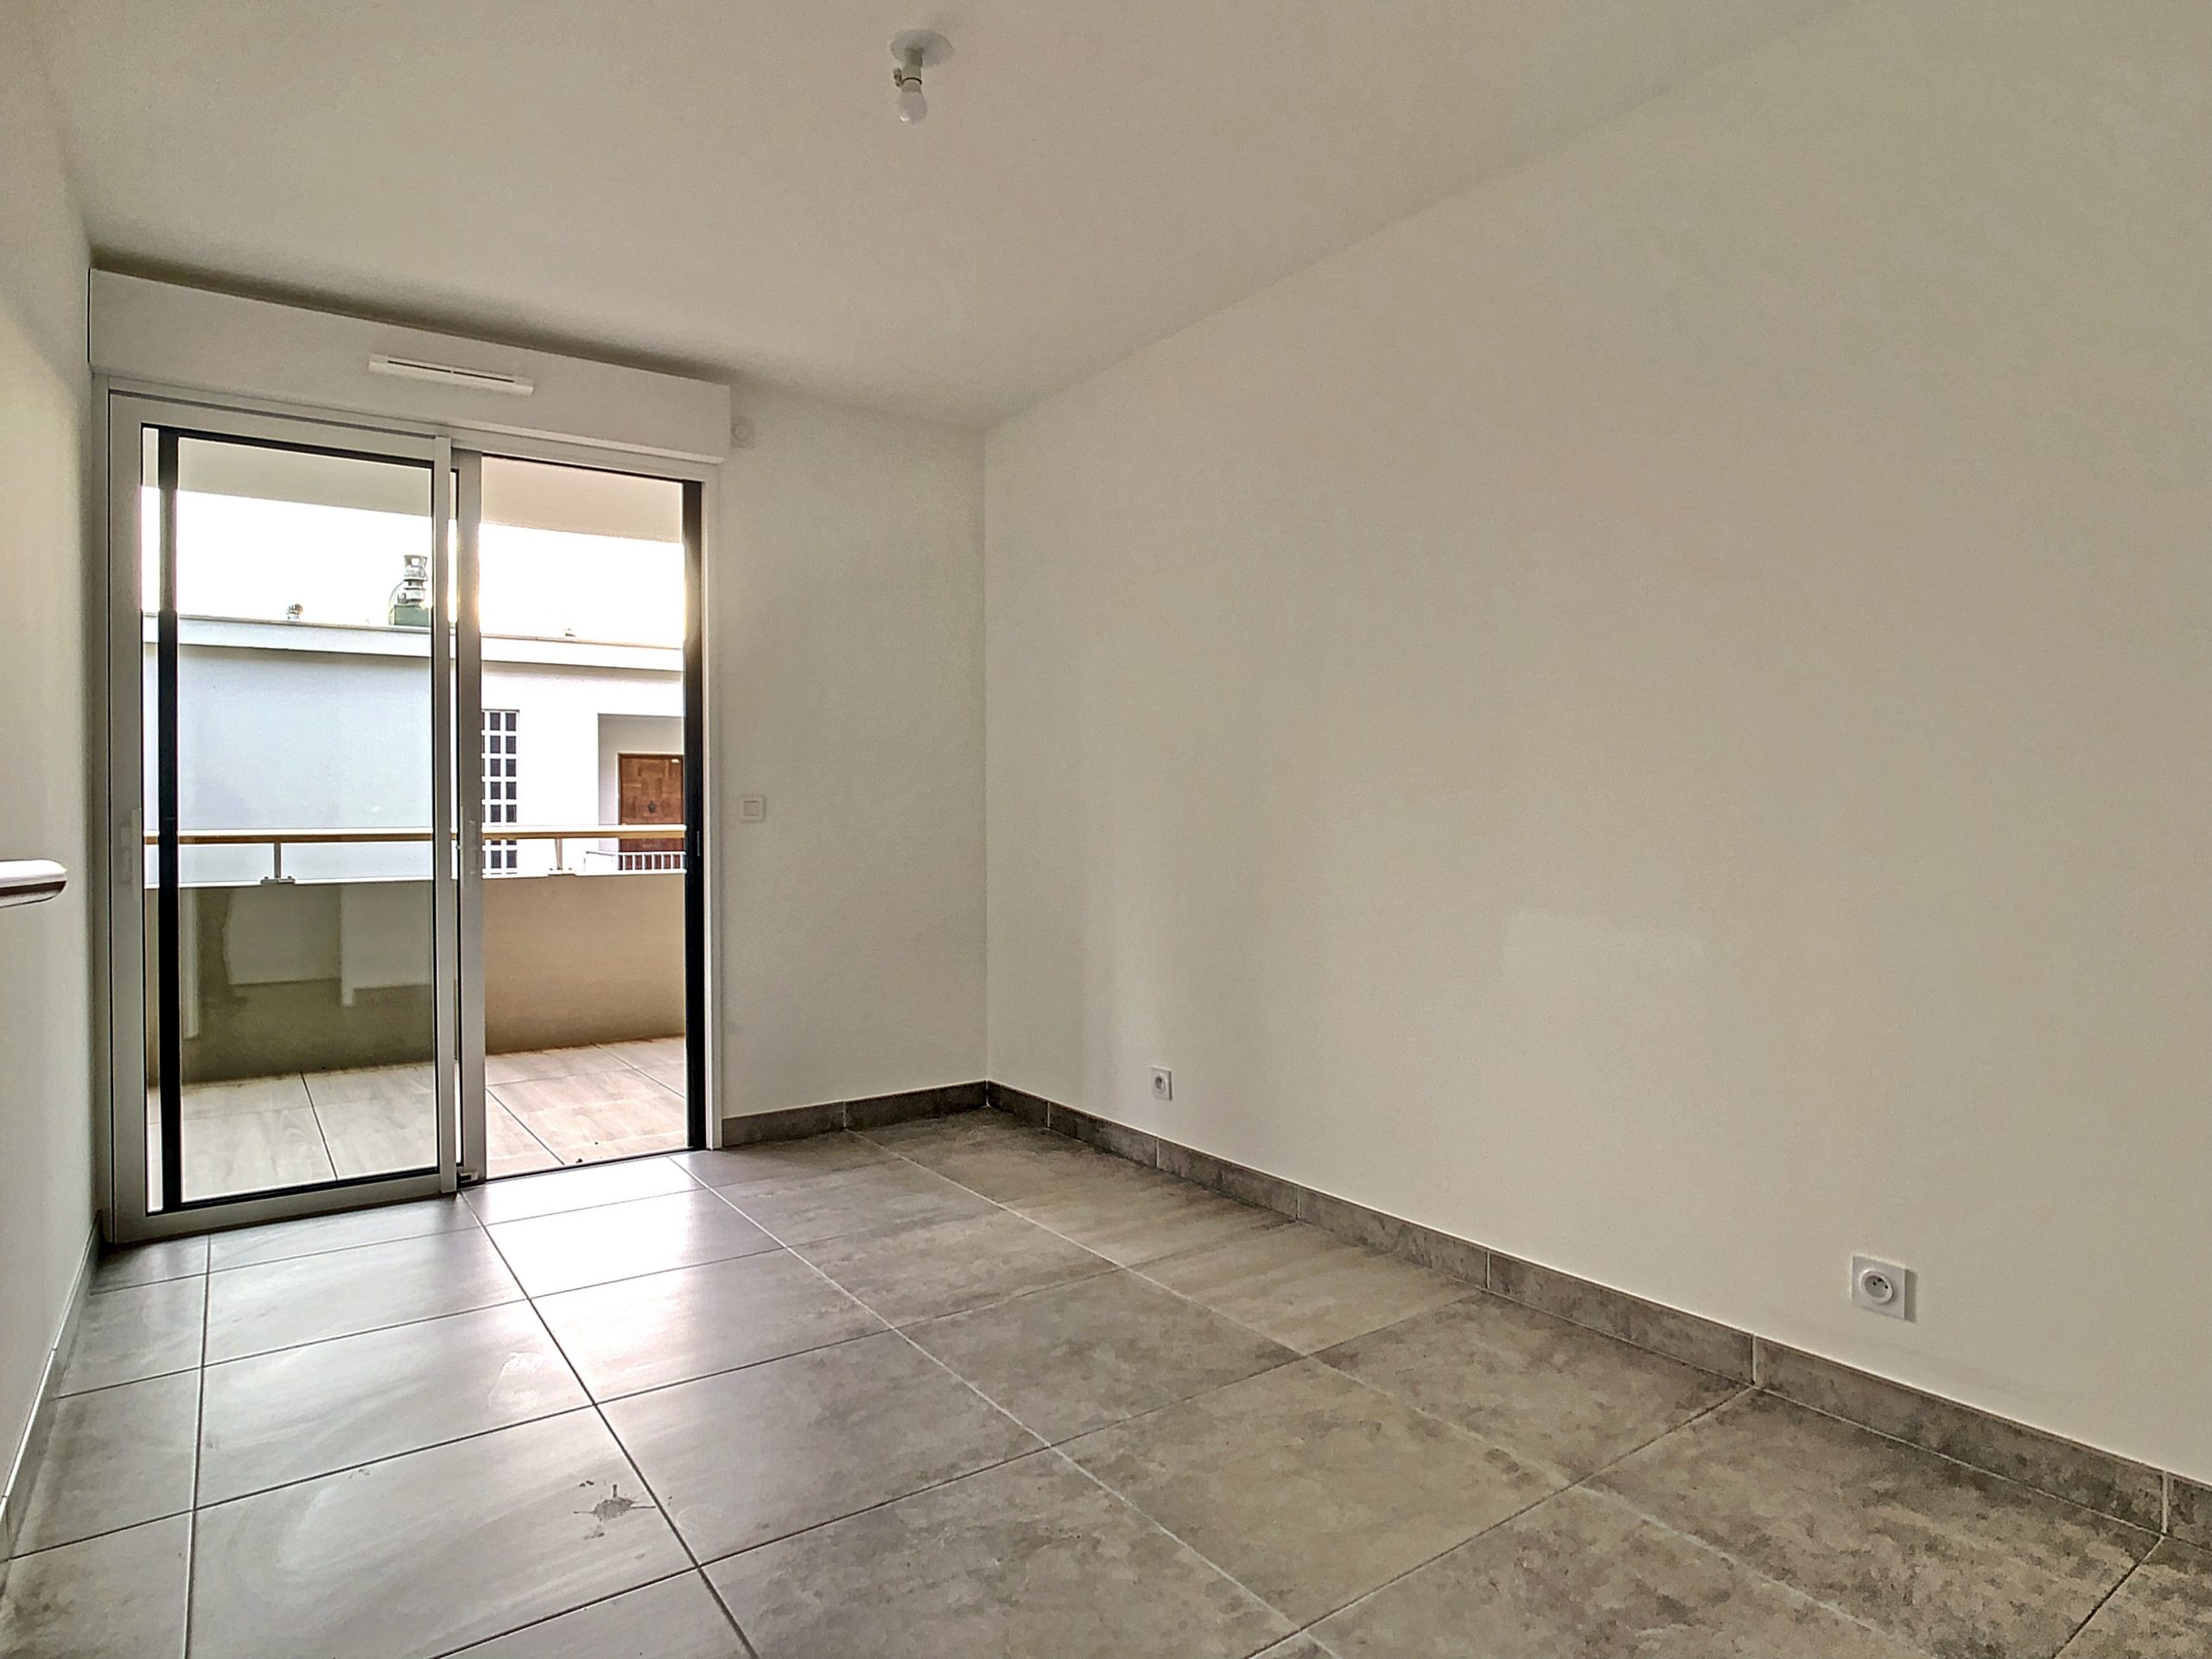 Flat of 3 Rooms with terrace of 23 m² in a quiet environment